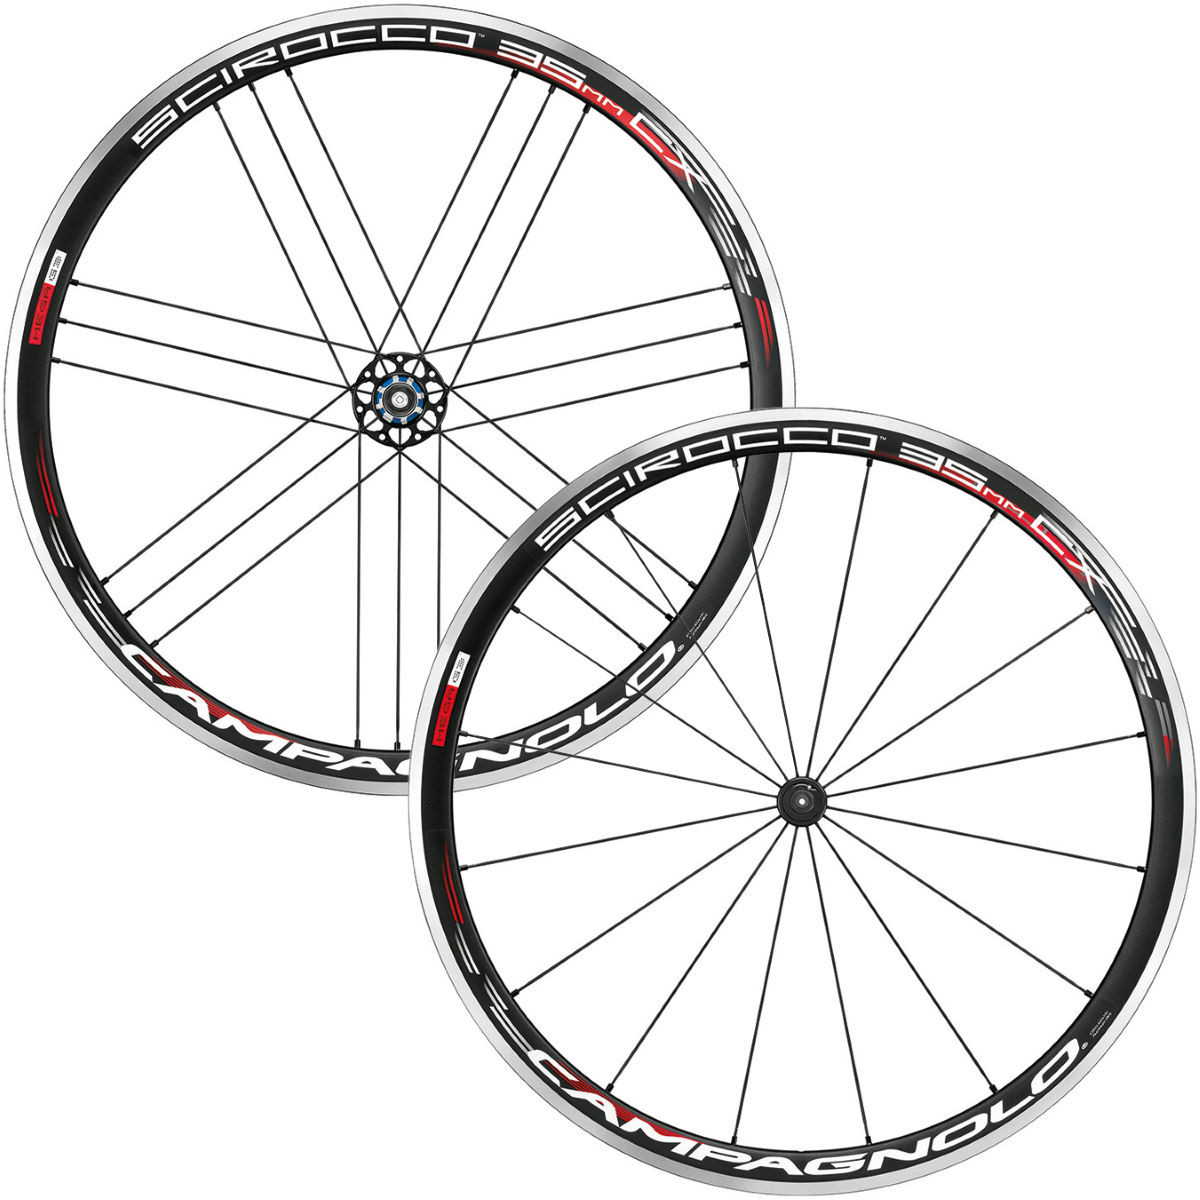 Campagnolo Scirocco 35 CX Clincher Wheelset Performance Wheels